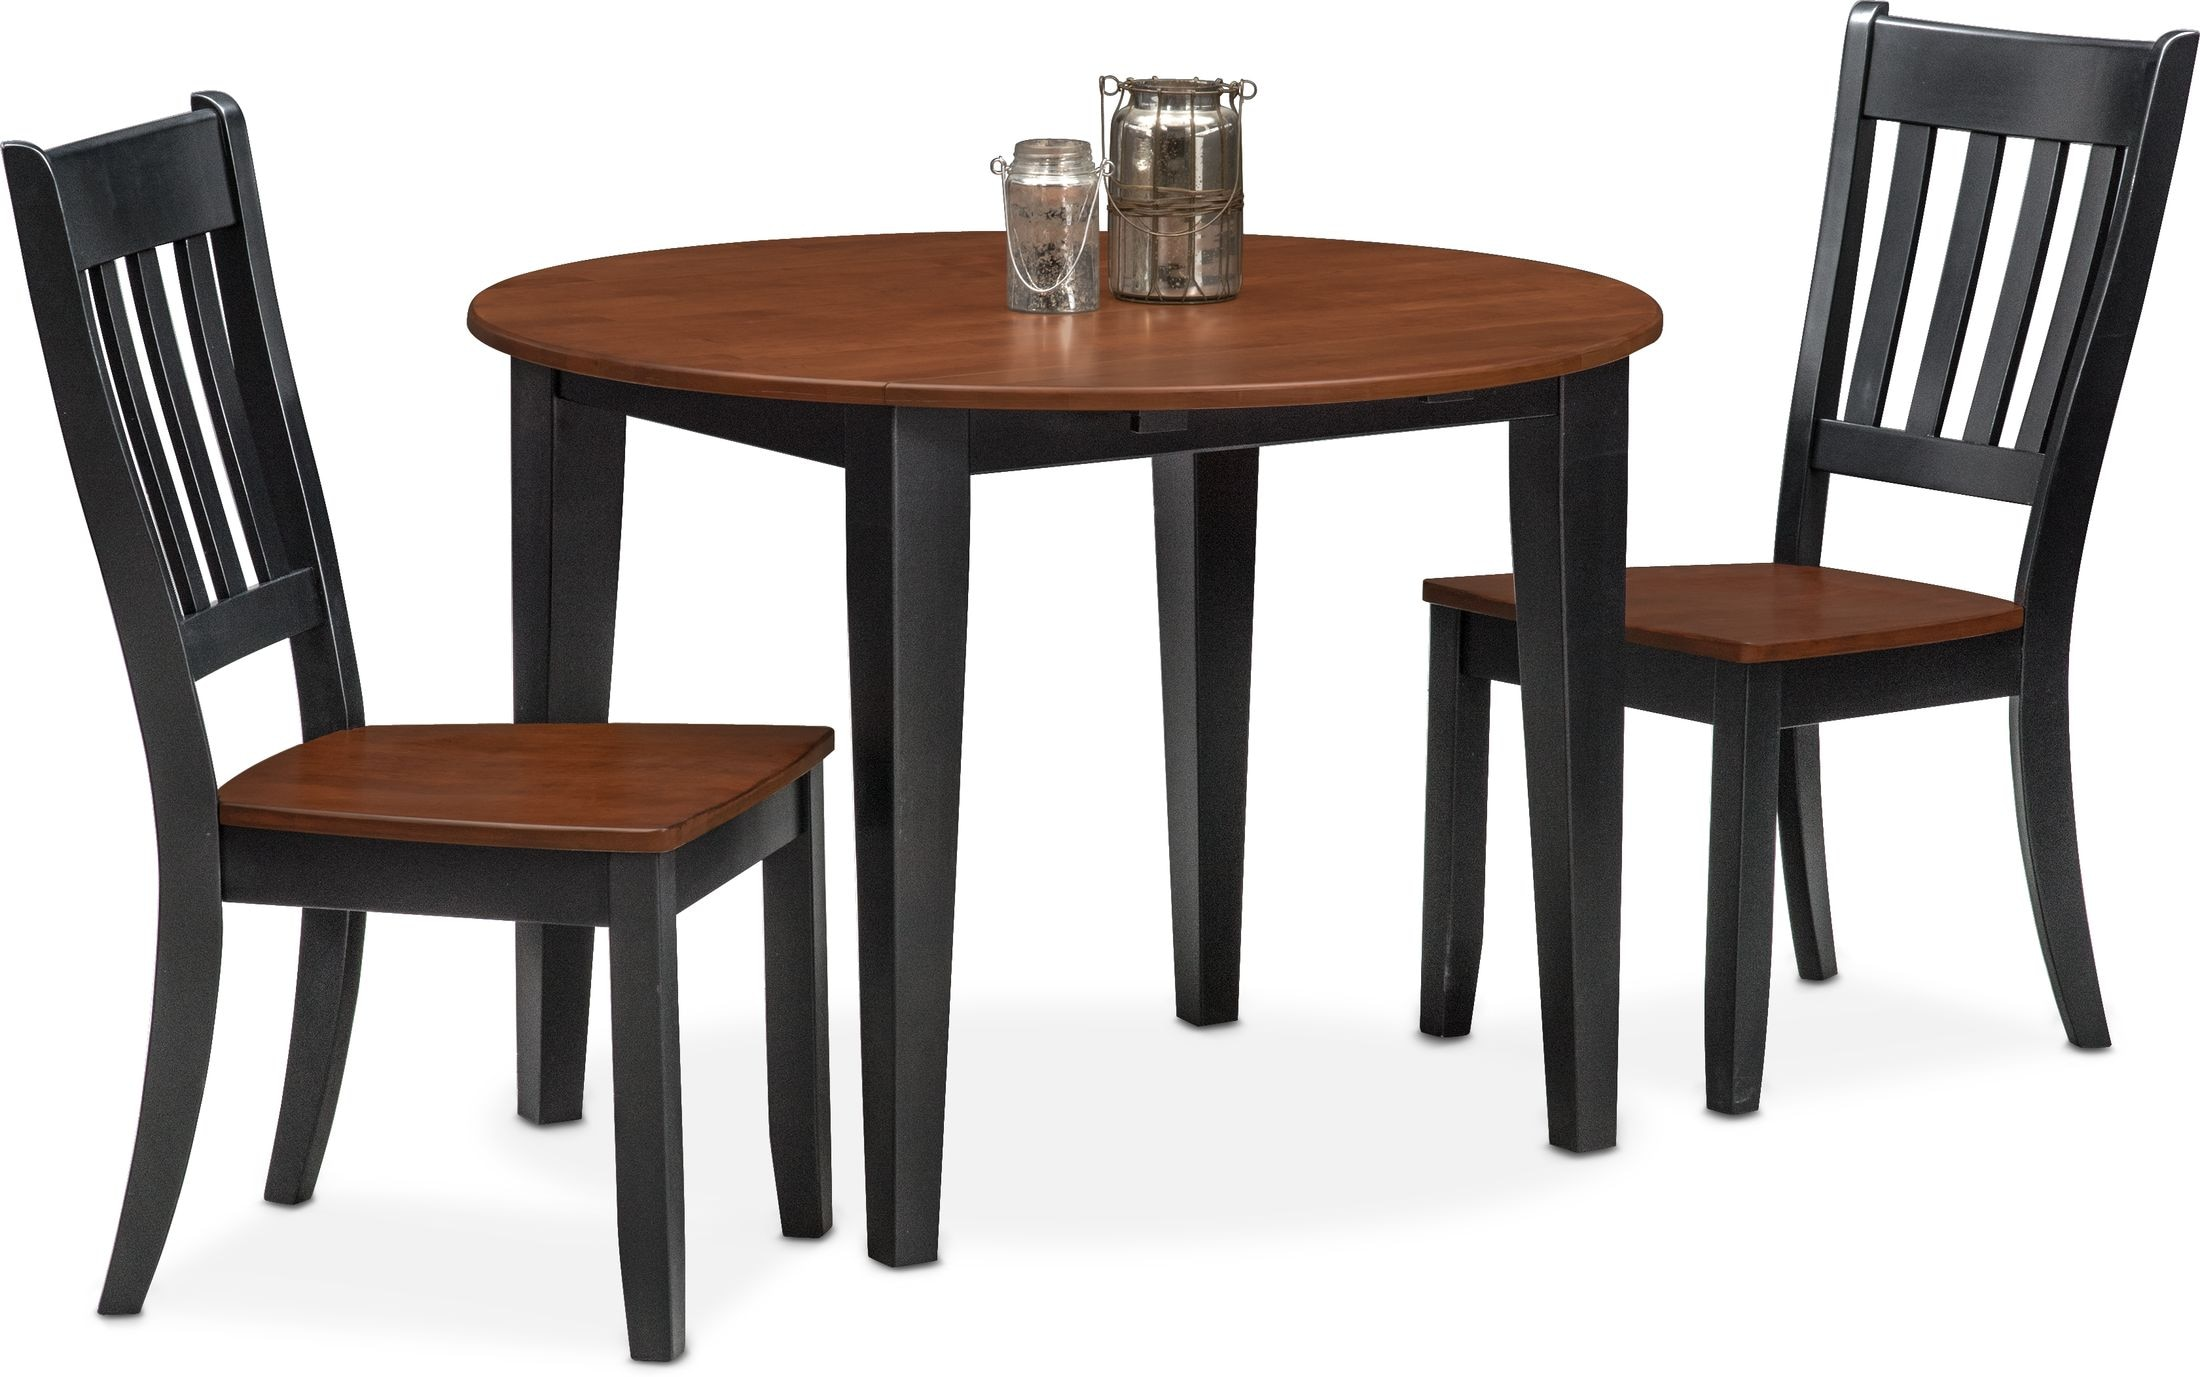 Nantucket Drop Leaf Dining Table And 2 Slat Back Dining Chairs Value City Furniture